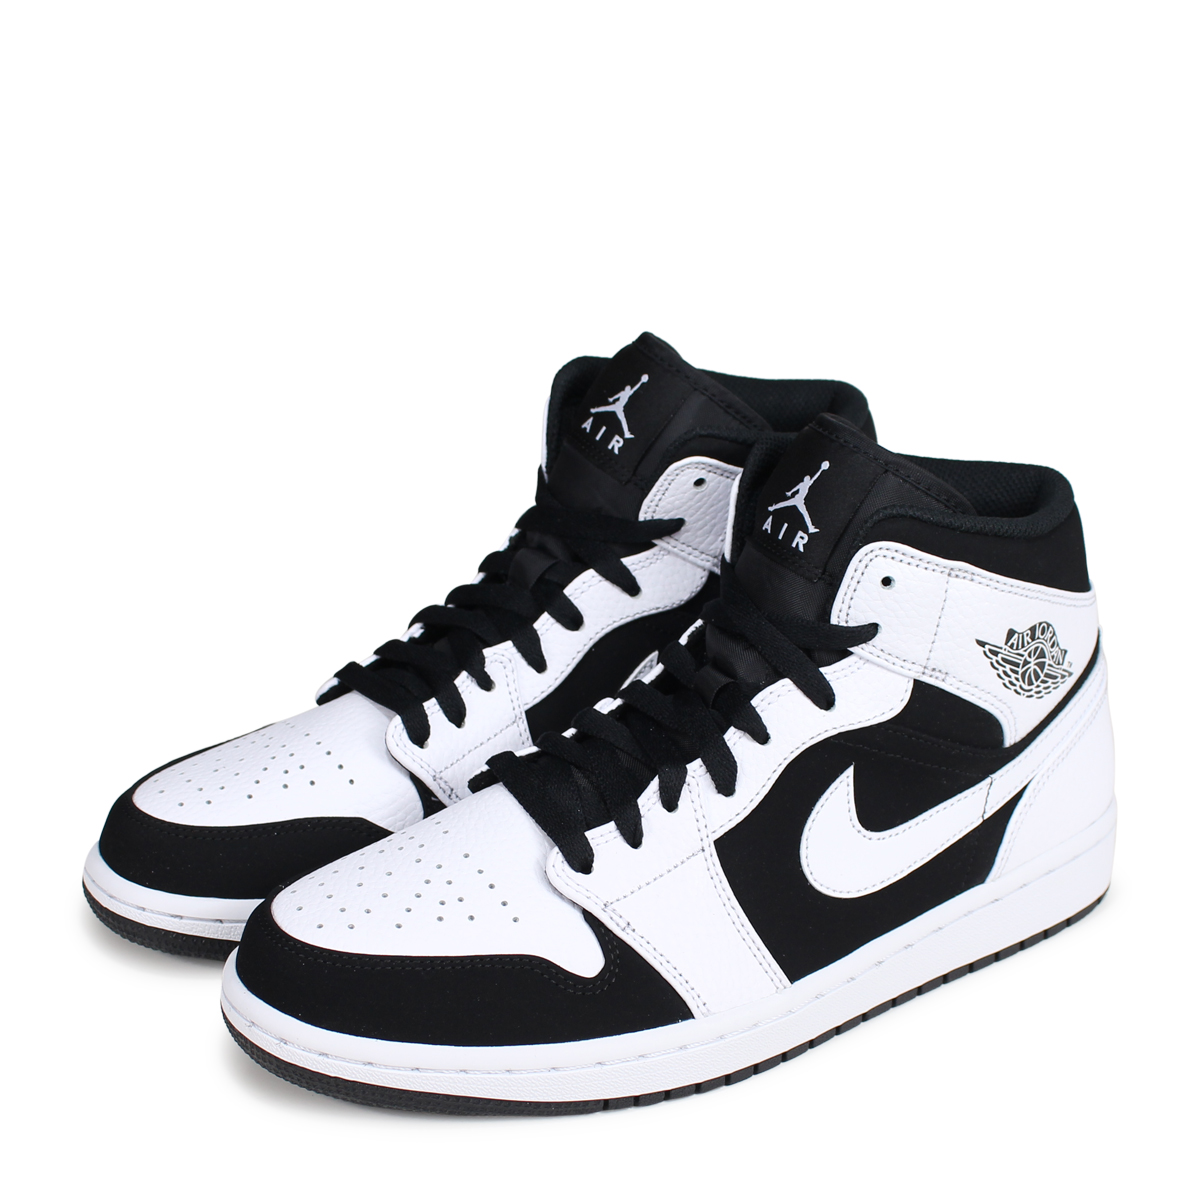 separation shoes 83b0c b03ff Nike NIKE Air Jordan 1 sneakers men AIR JORDAN 1 MID 554,724-113 white  white ...